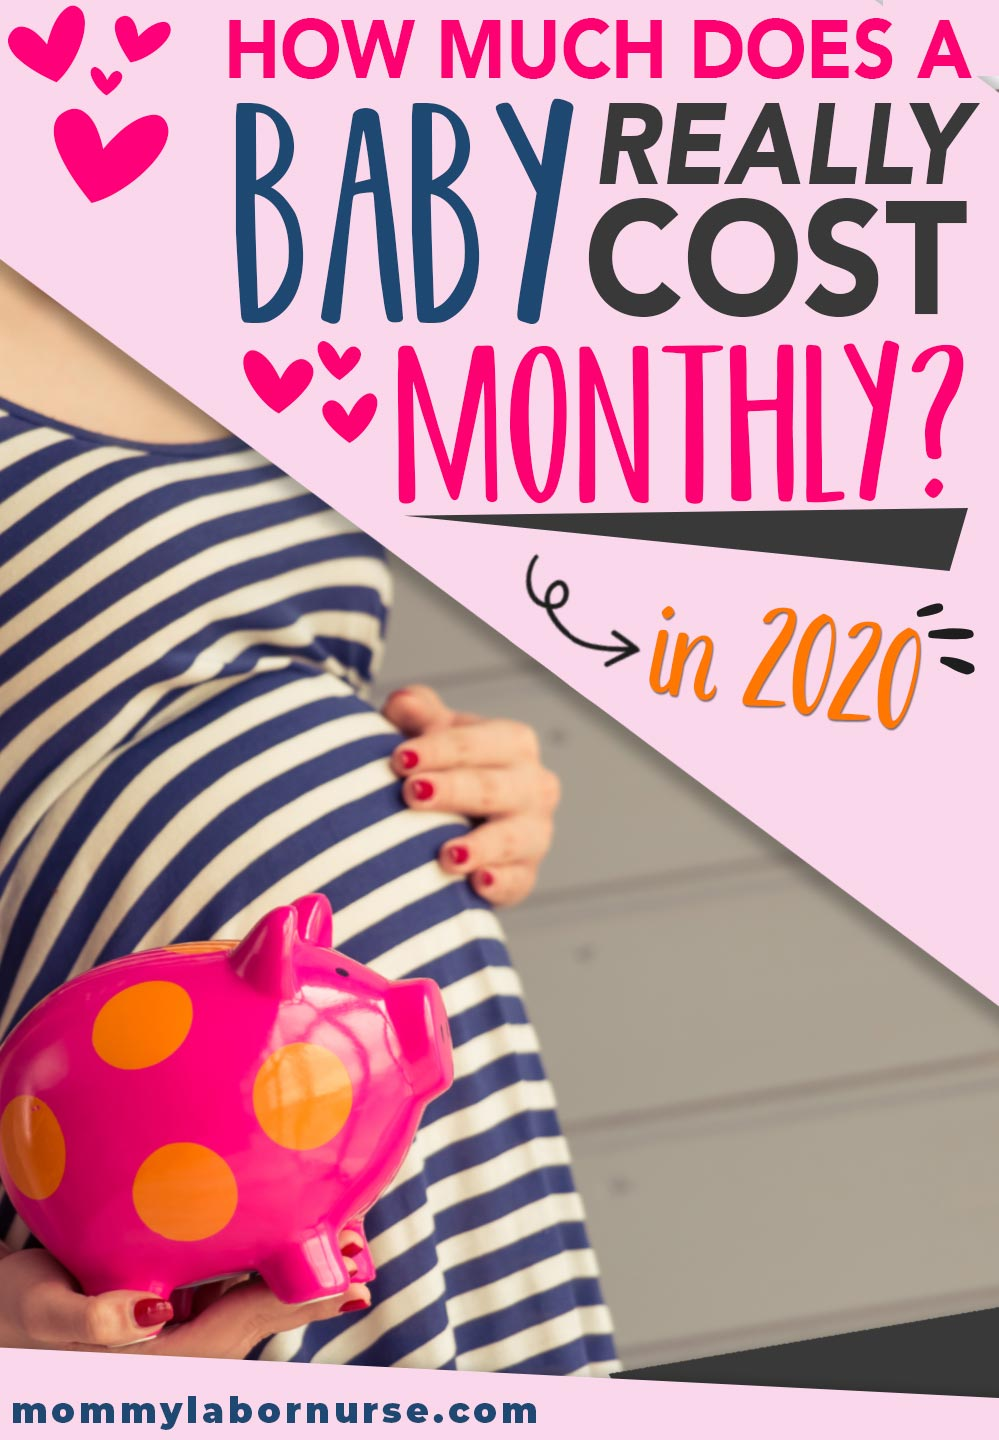 how much does baby cost per month on average